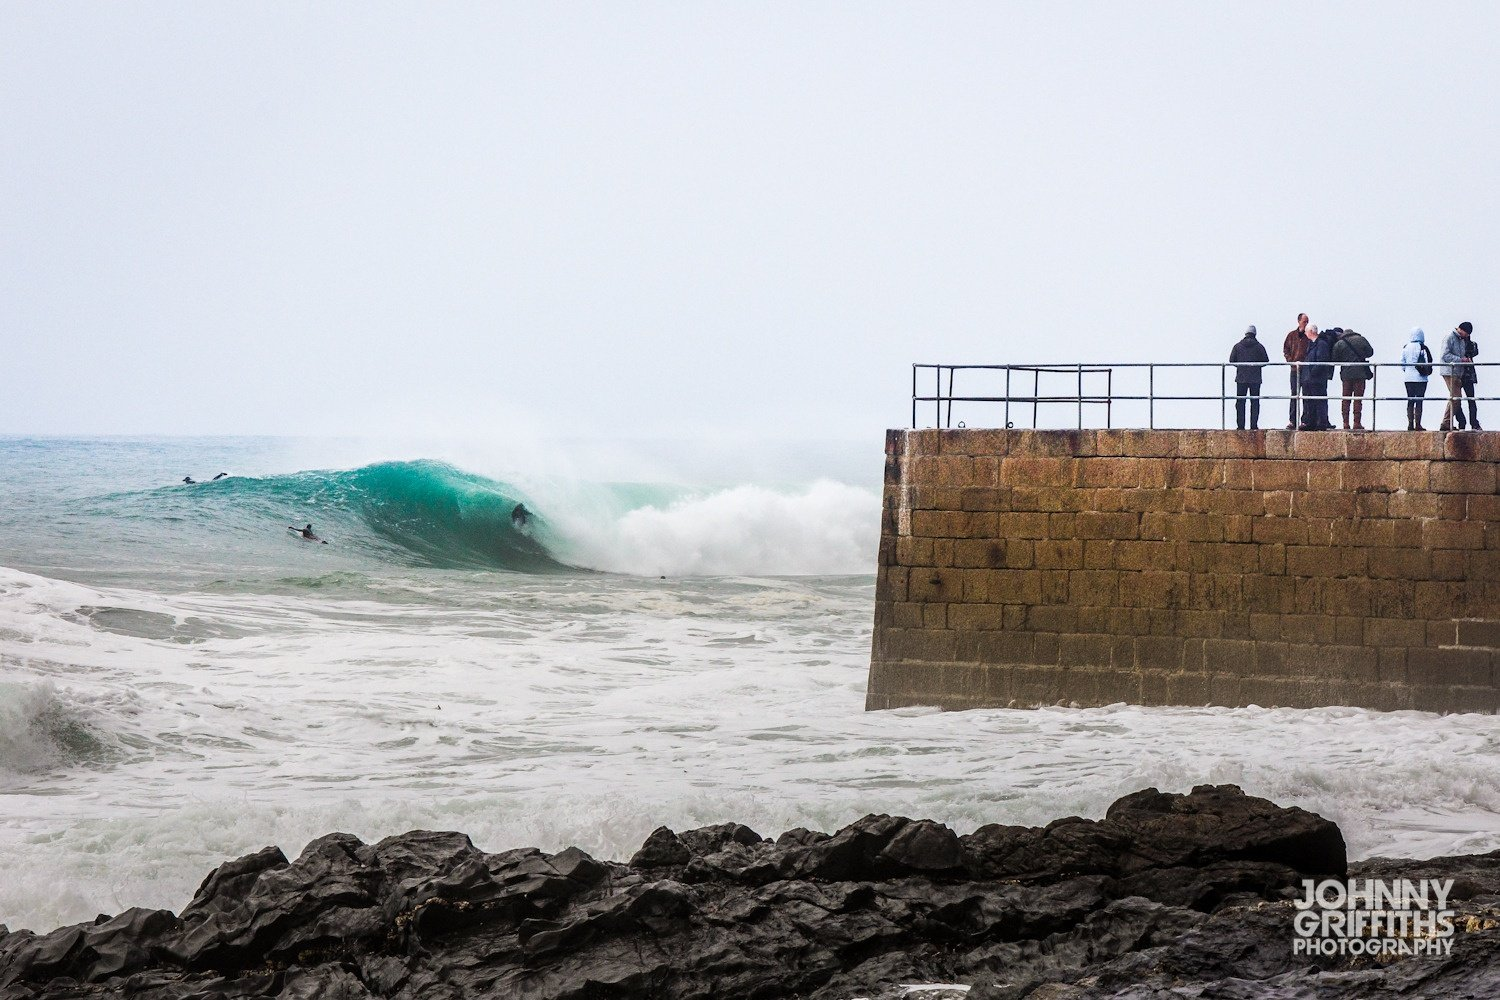 Johnny Griffiths Photography's photo of Porthleven